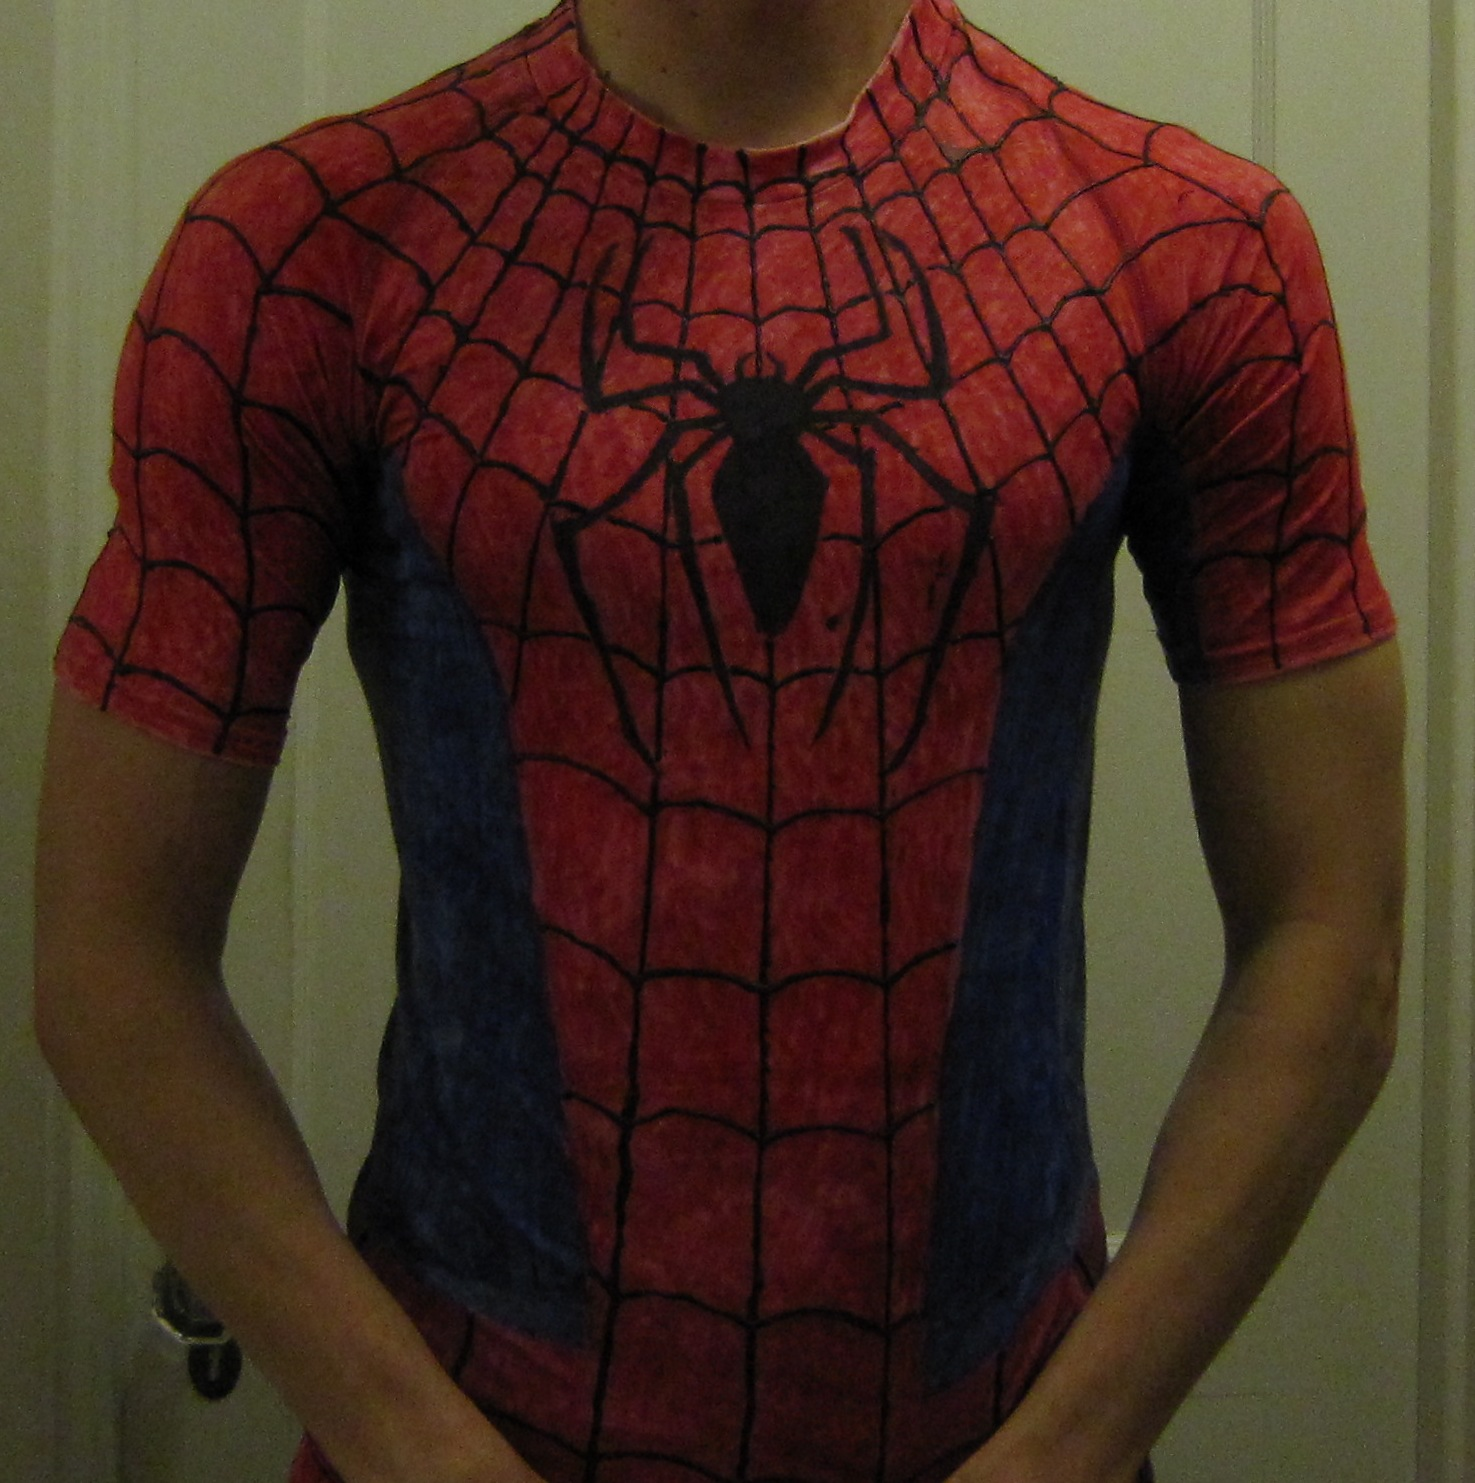 Chuck does art diy do it yourself costume spider man a few halloweens ago i went as spider man the marvel comics superhero rather than try to make a full body spandex suit i opted for the simpler and less solutioingenieria Choice Image